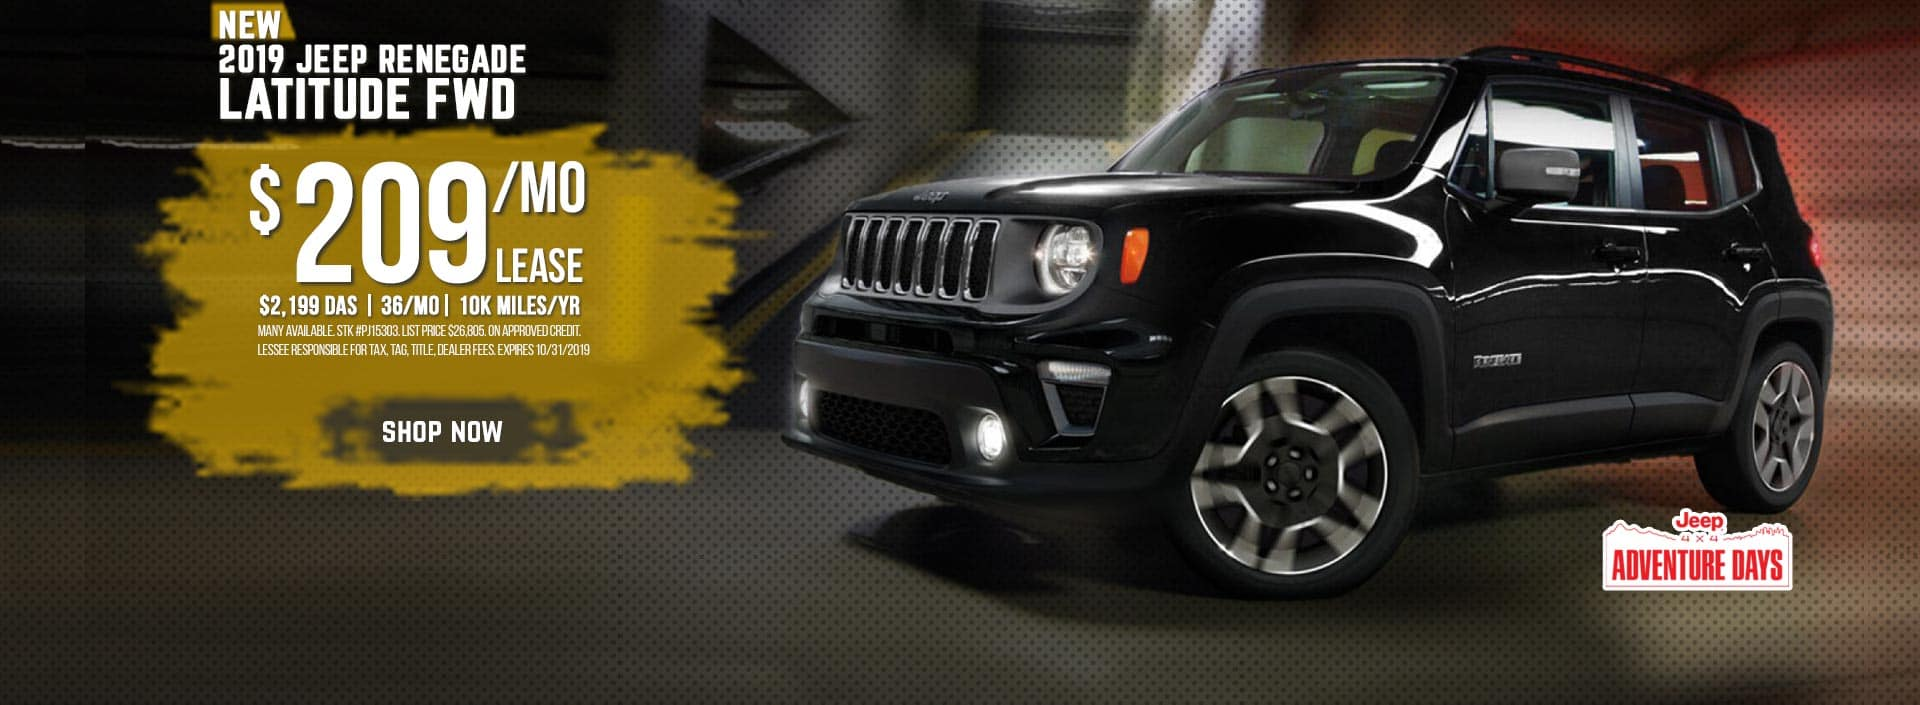 Jeep Renegade Sale